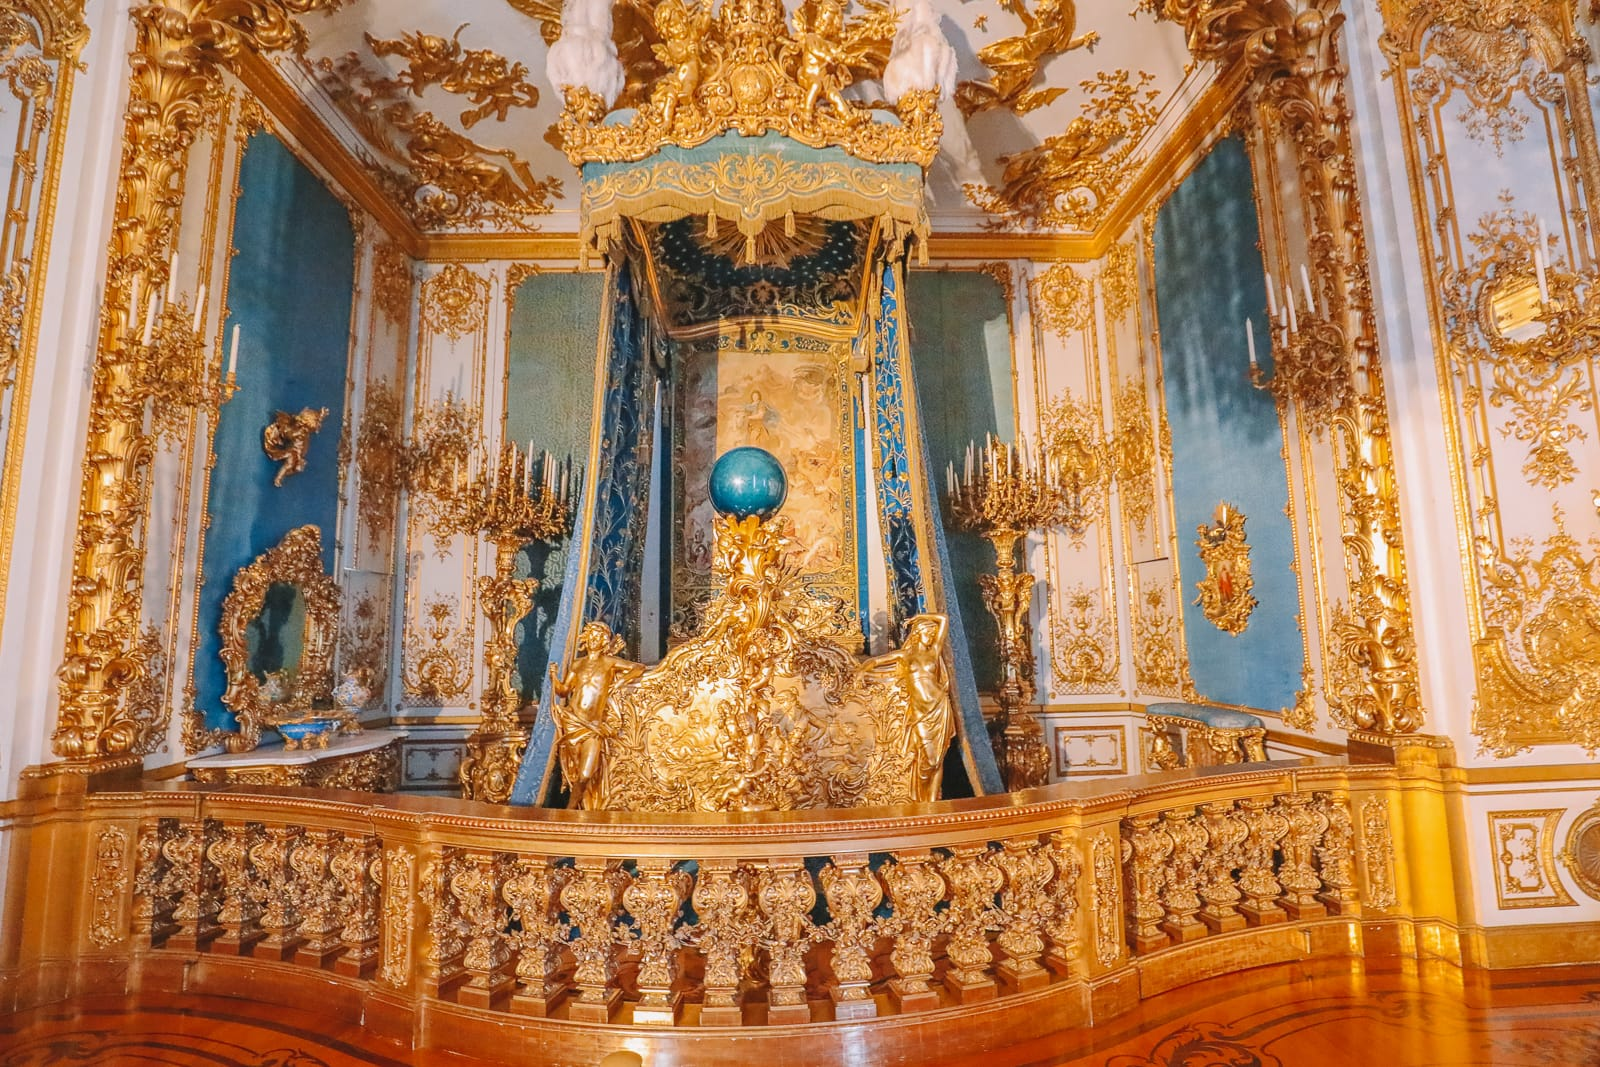 Herrenchiemsee Palace - One Of The Most Beautiful And Grandest Palaces In Germany You Have To Visit! (44)